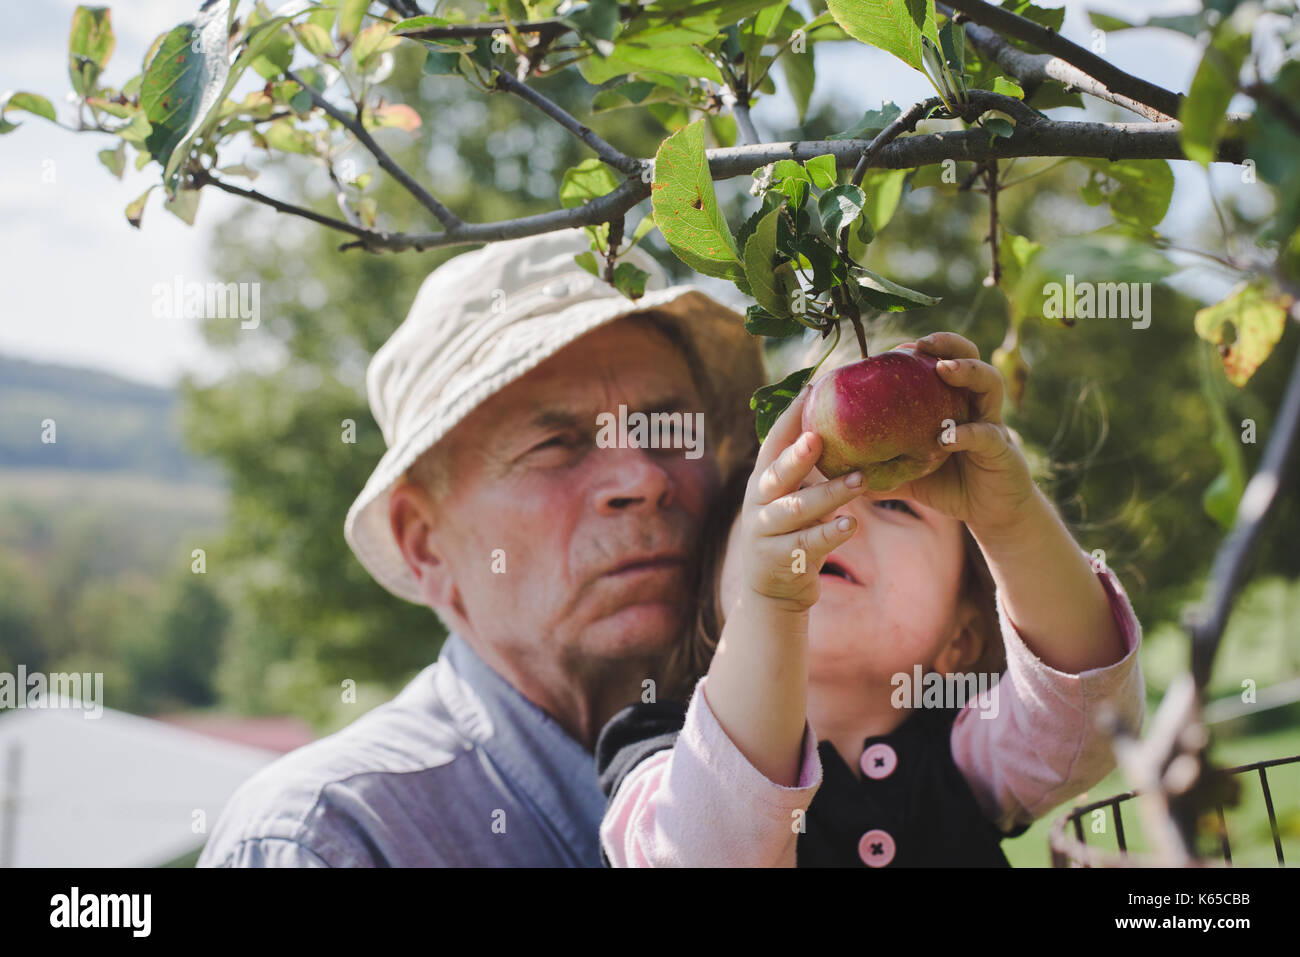 A grandfather helps his granddaughter pick an apple off a tree. - Stock Image